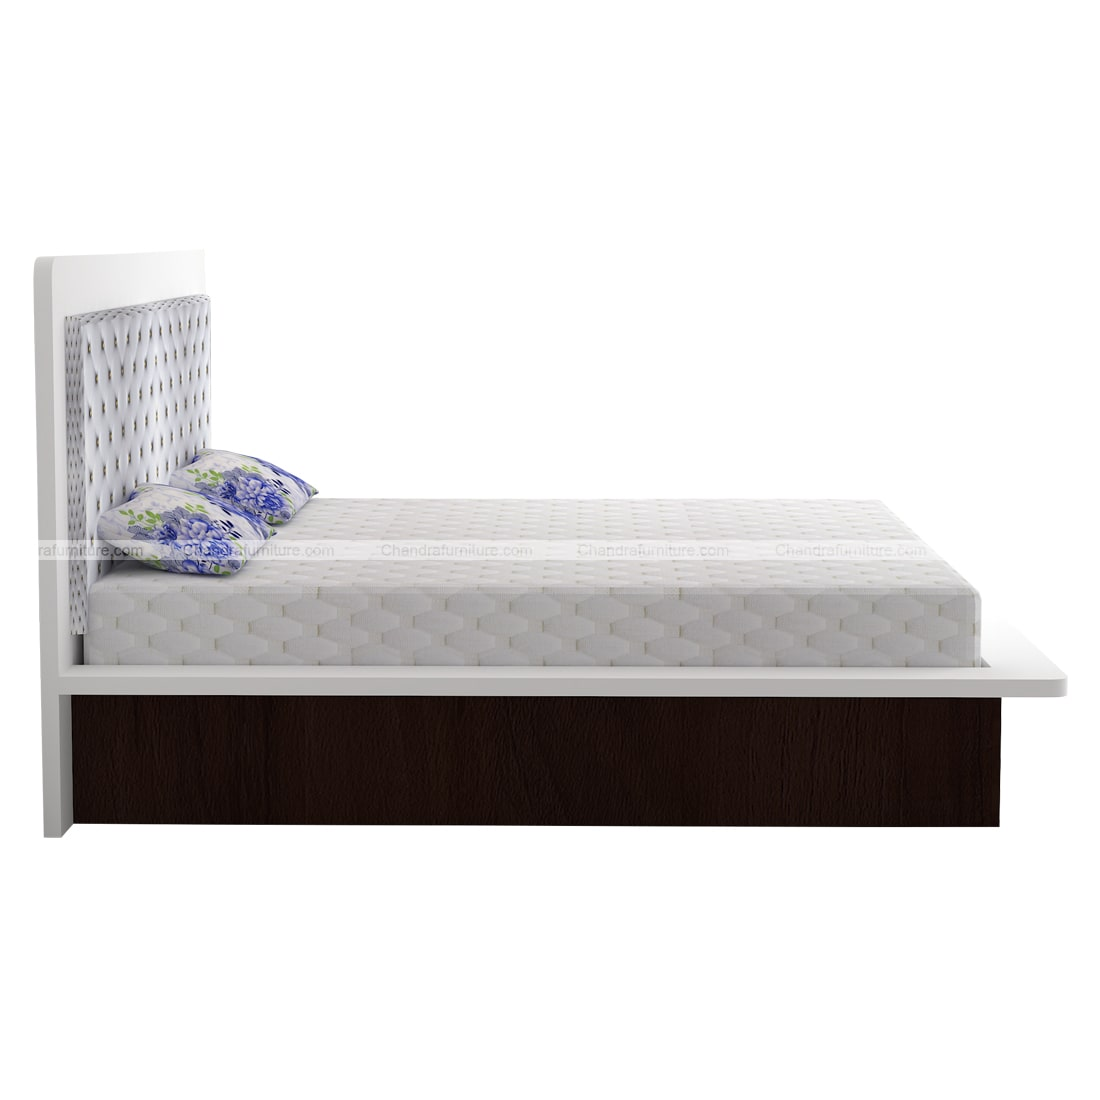 Chandra Furniture King Size Bed - 73B Low Floor